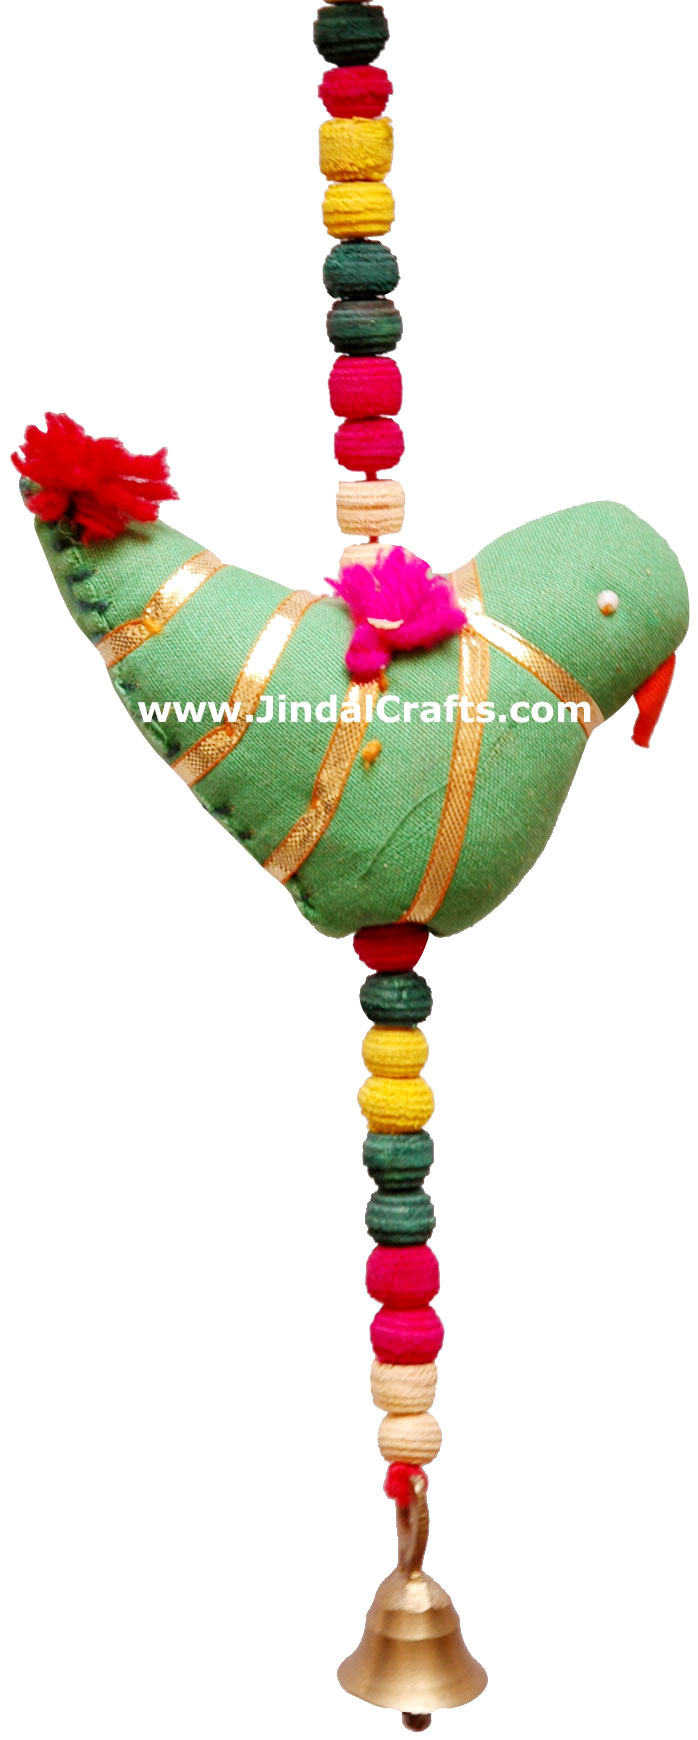 Home decoration items - Hanging Handmade Home Door Decoration From India